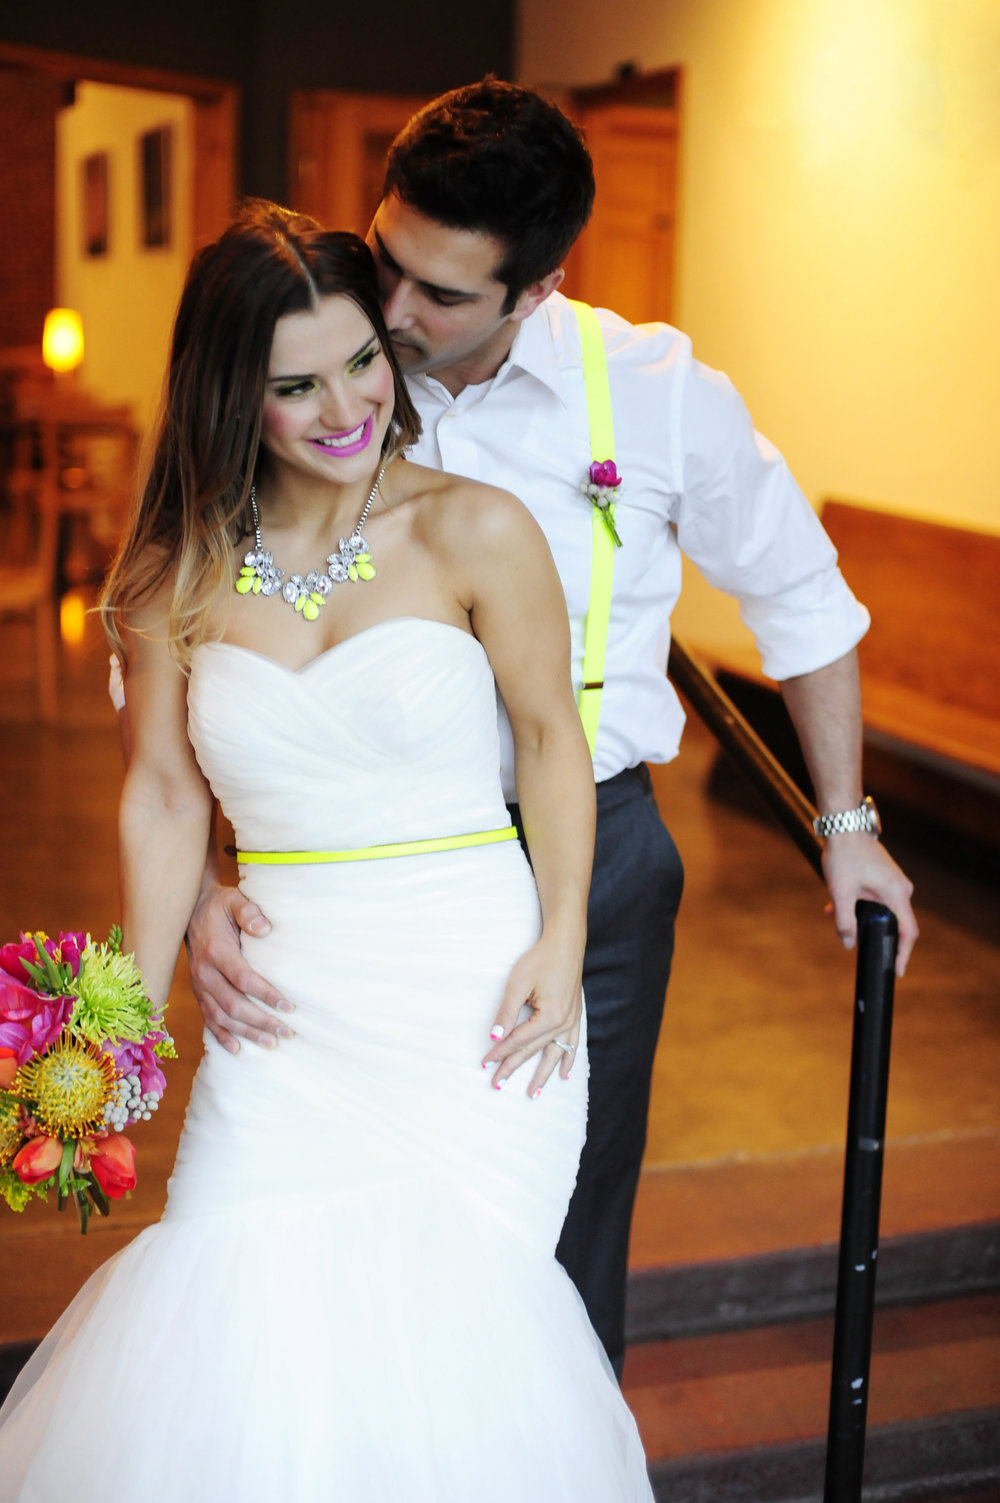 Neon Wedding Inspiration-Neon Submission-0013.jpg